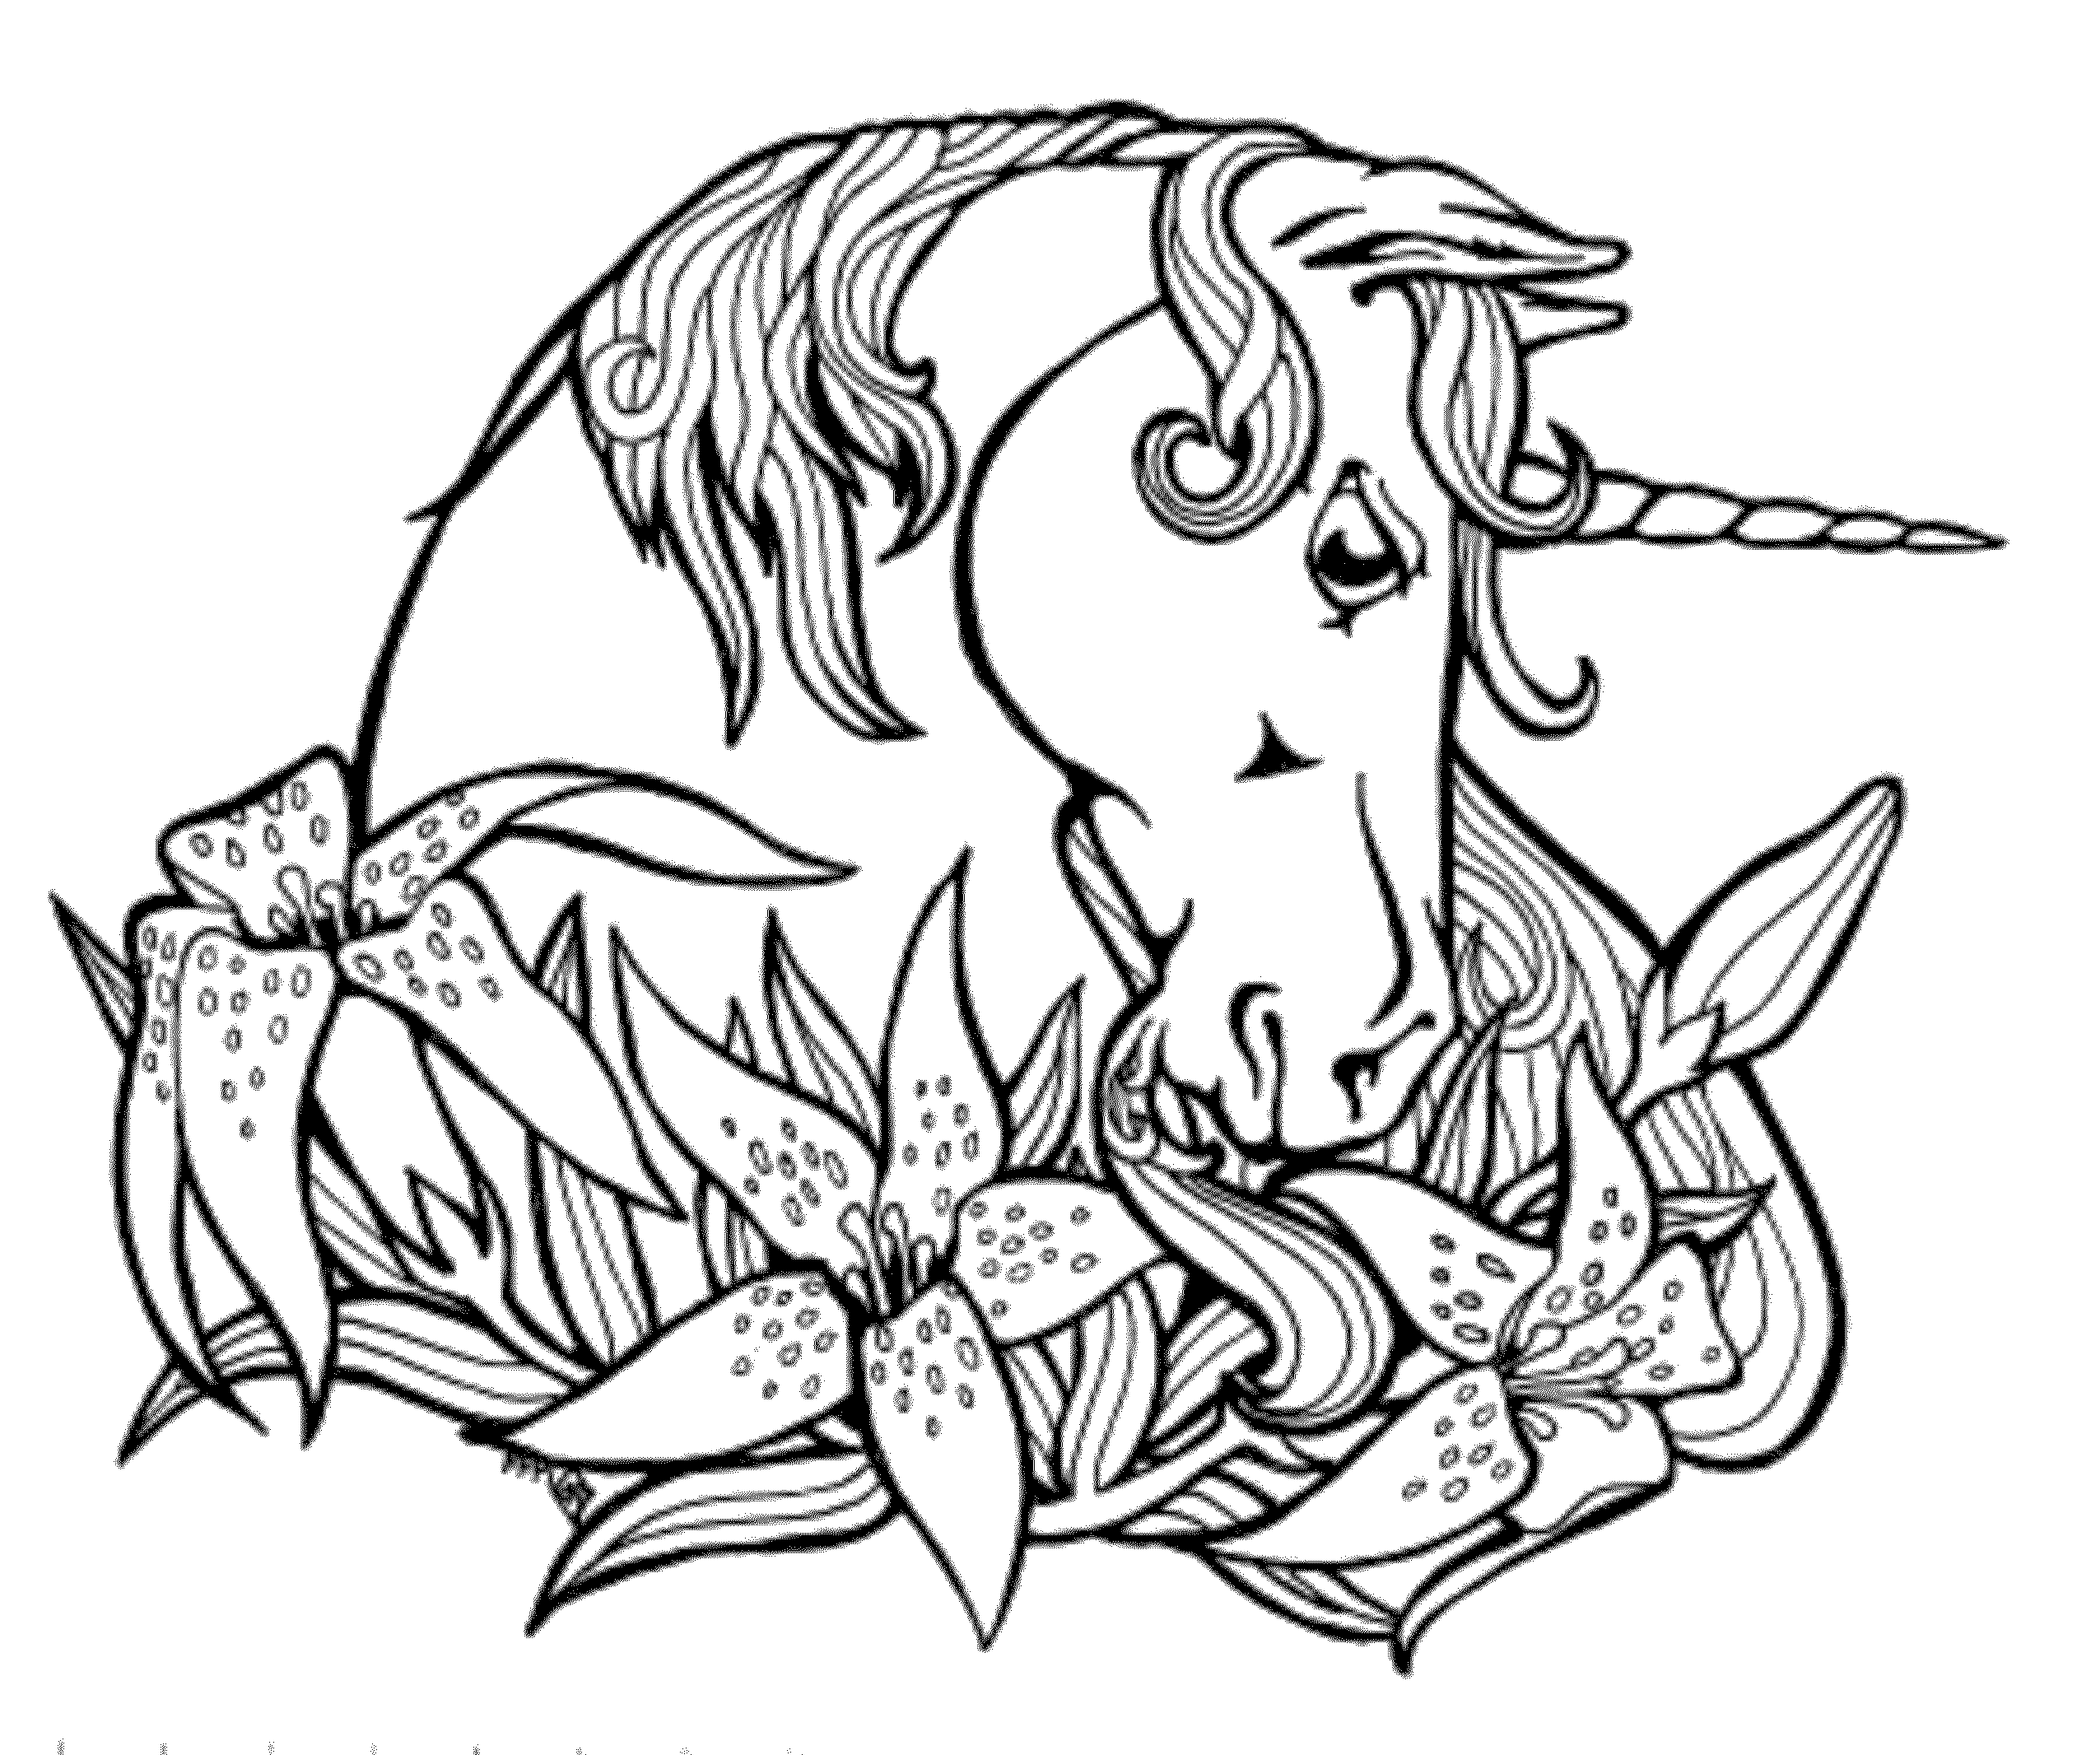 coloring pictures of unicorns adorable unicorn coloring pages for girls and adults updated coloring of pictures unicorns